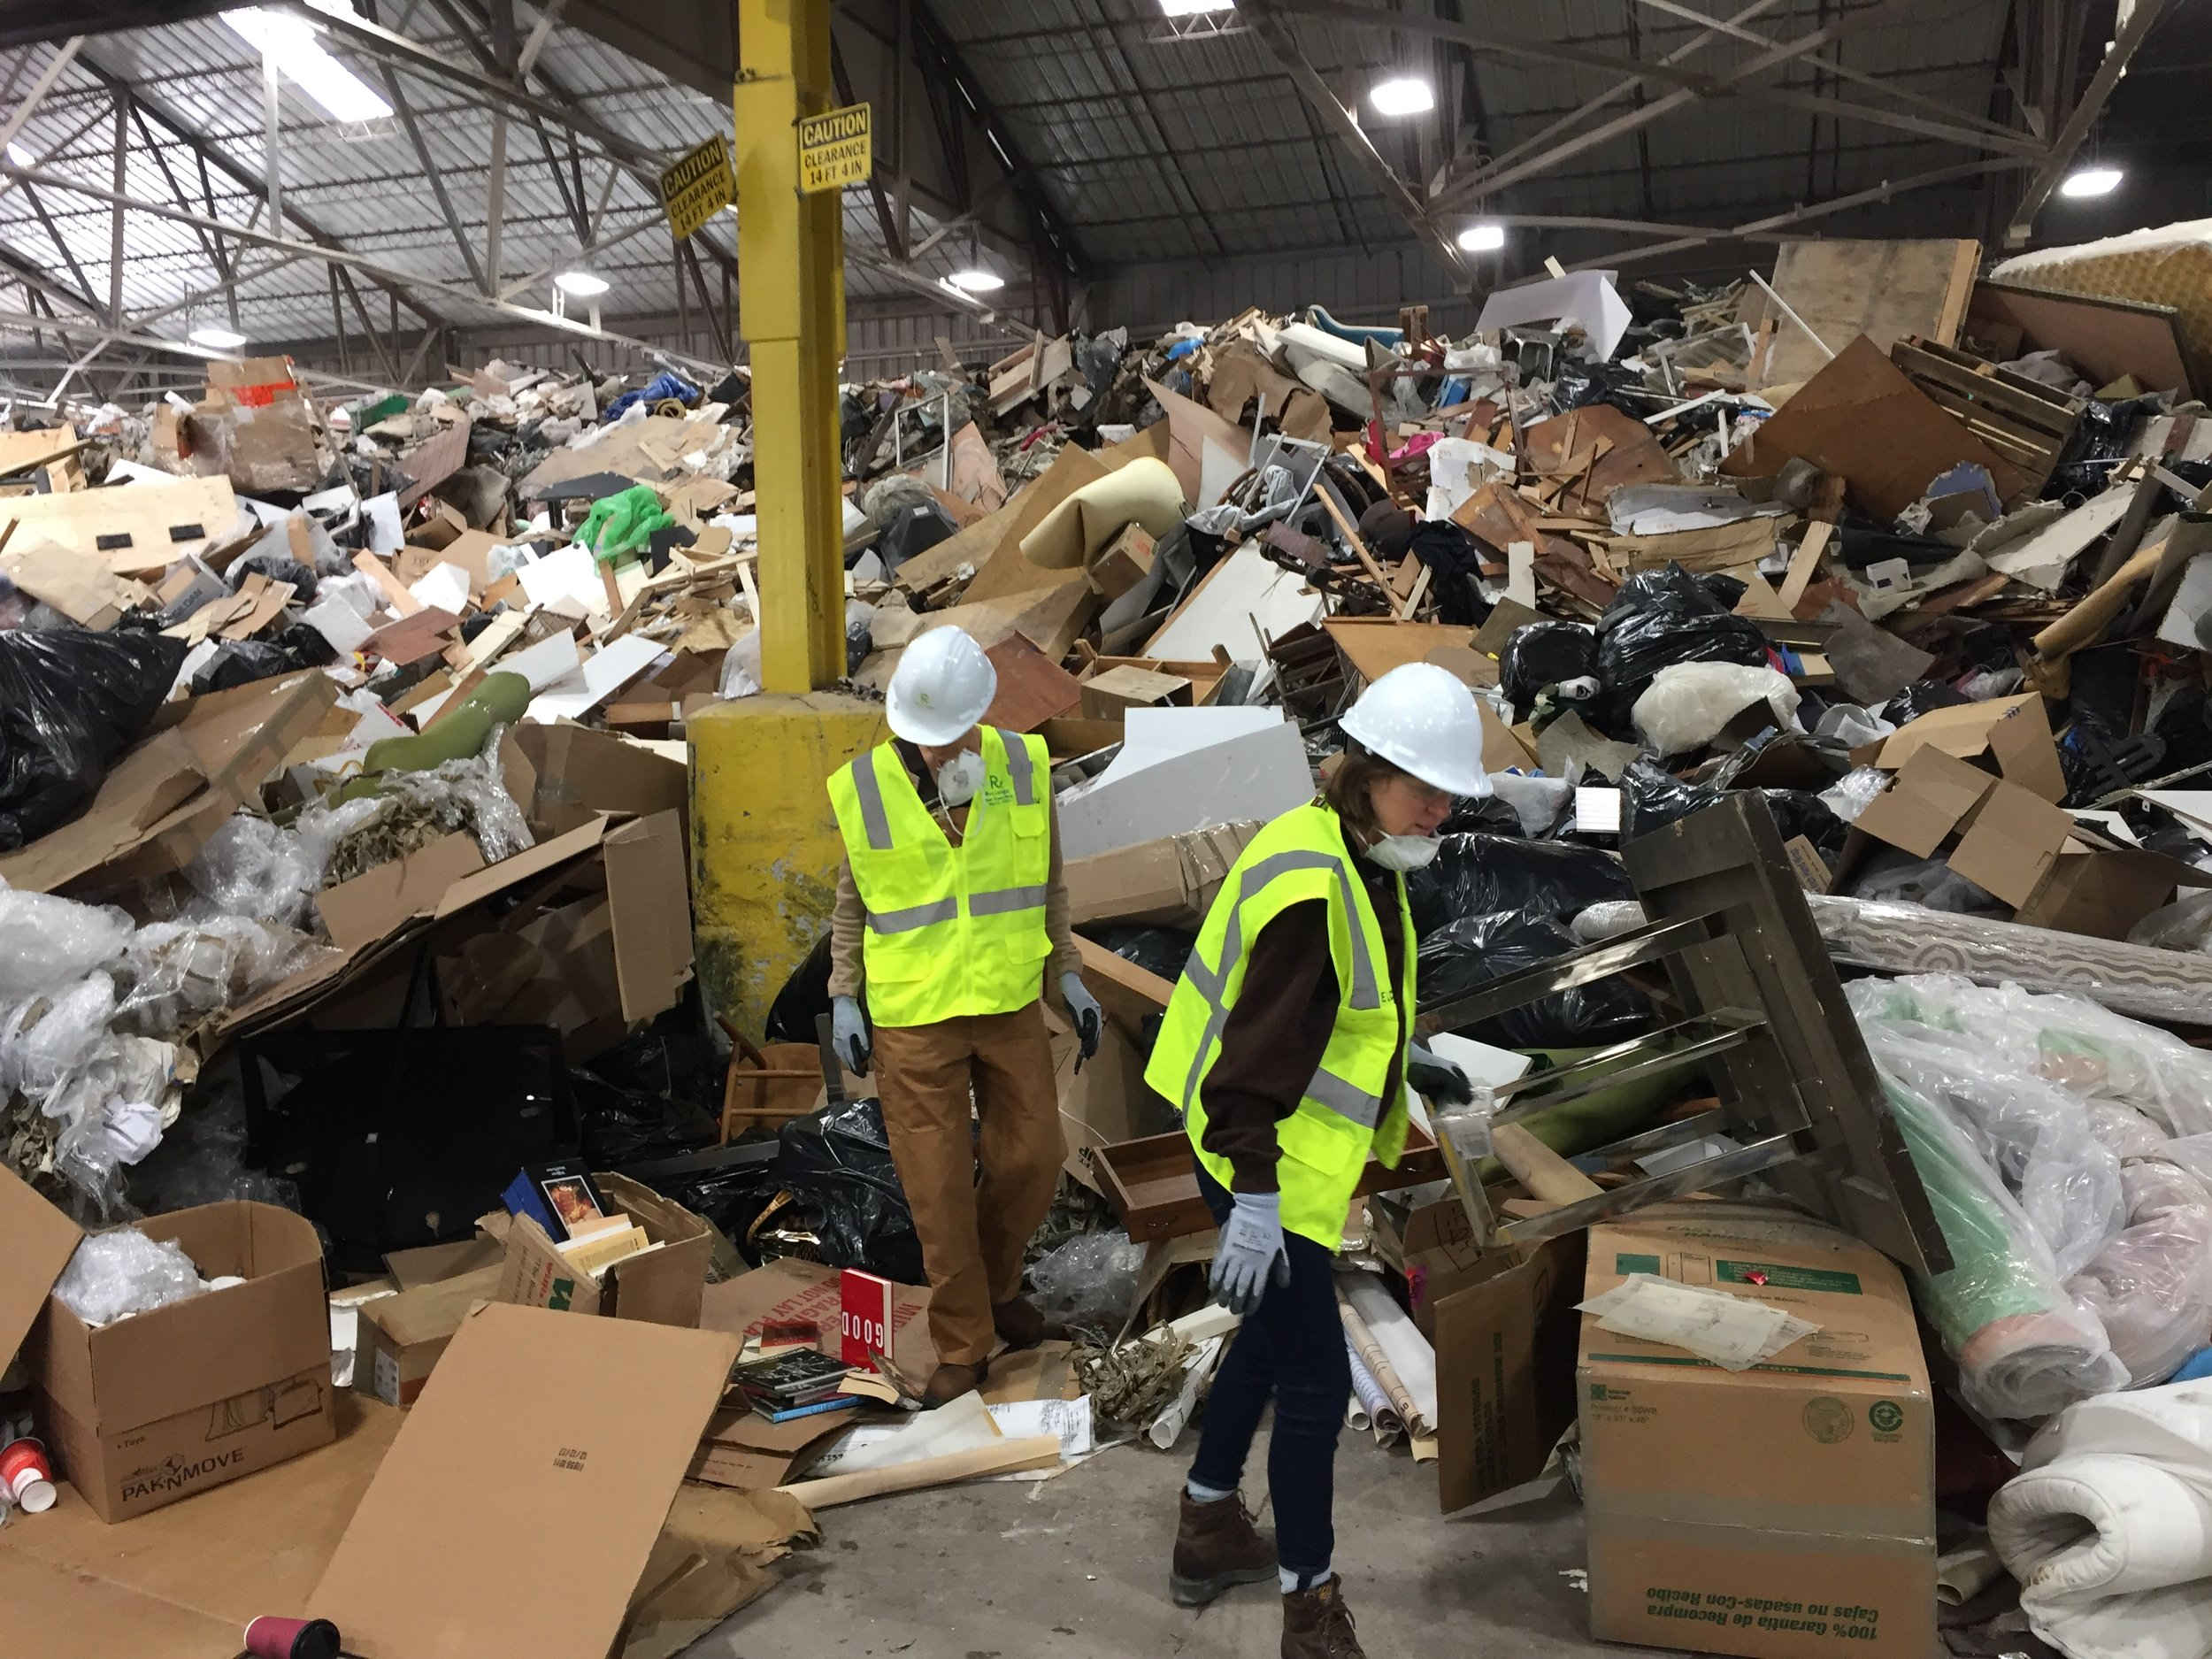 Hughen/Starkweather at Recology San Francisco, searching for discarded, single-use, plastic food packaging for their project about food waste,      Black Gold    .